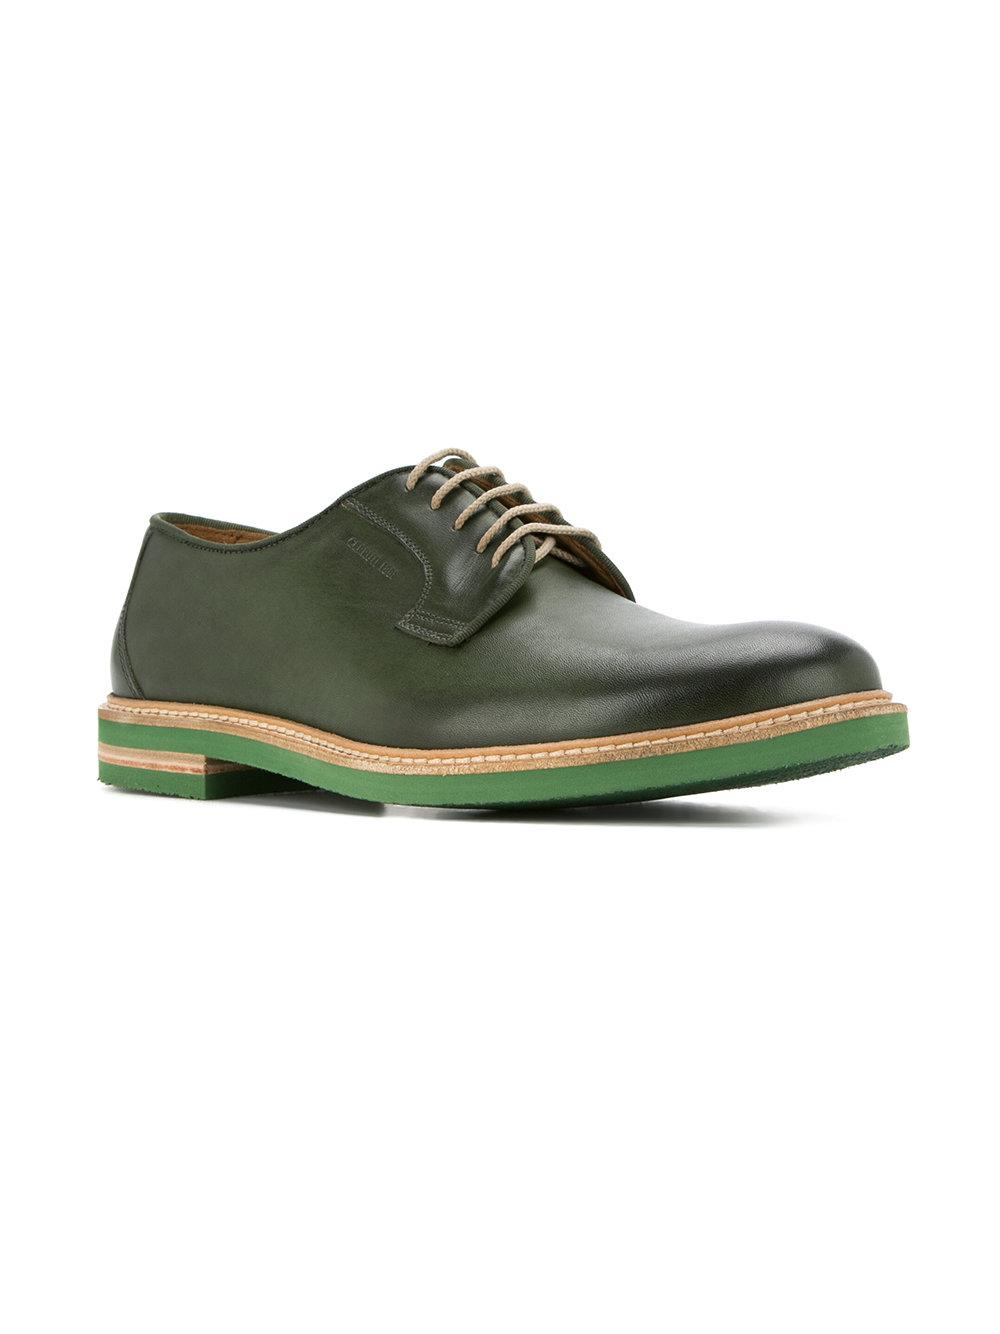 Derby shoes - Green Cerruti